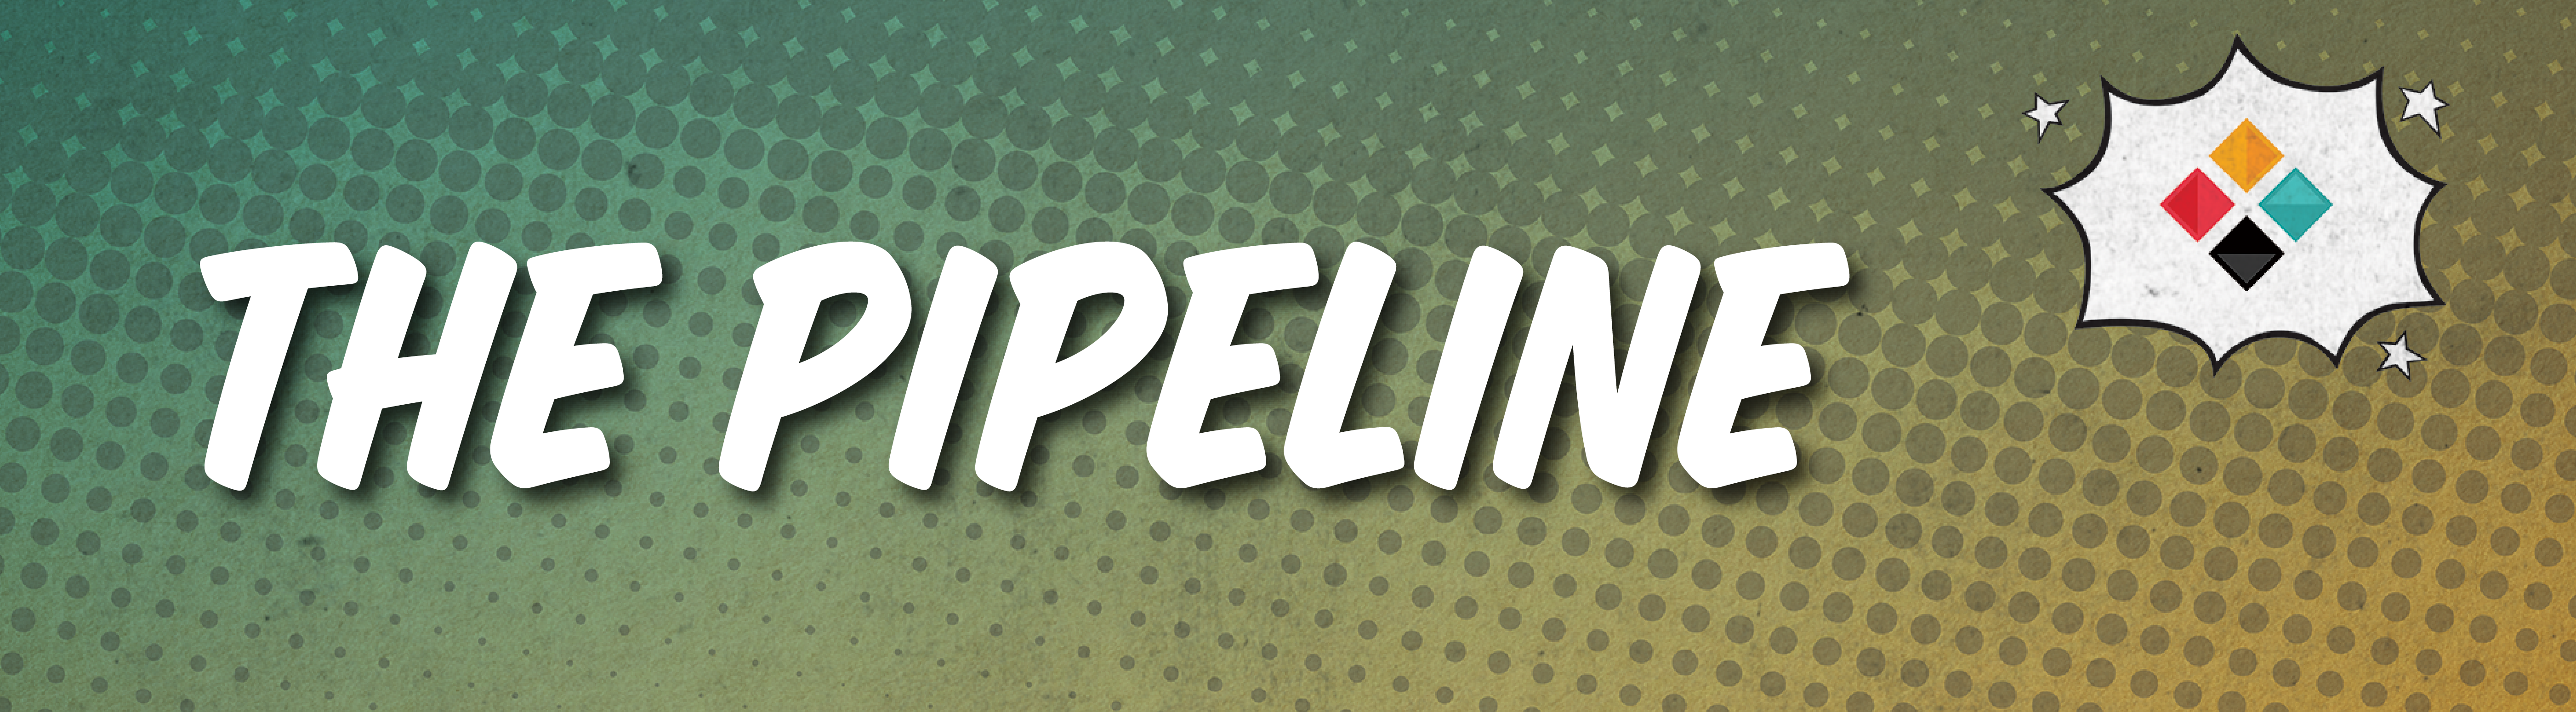 The Pipeline Ep. 1: How To Prepare for Upcoming Facebook Changes